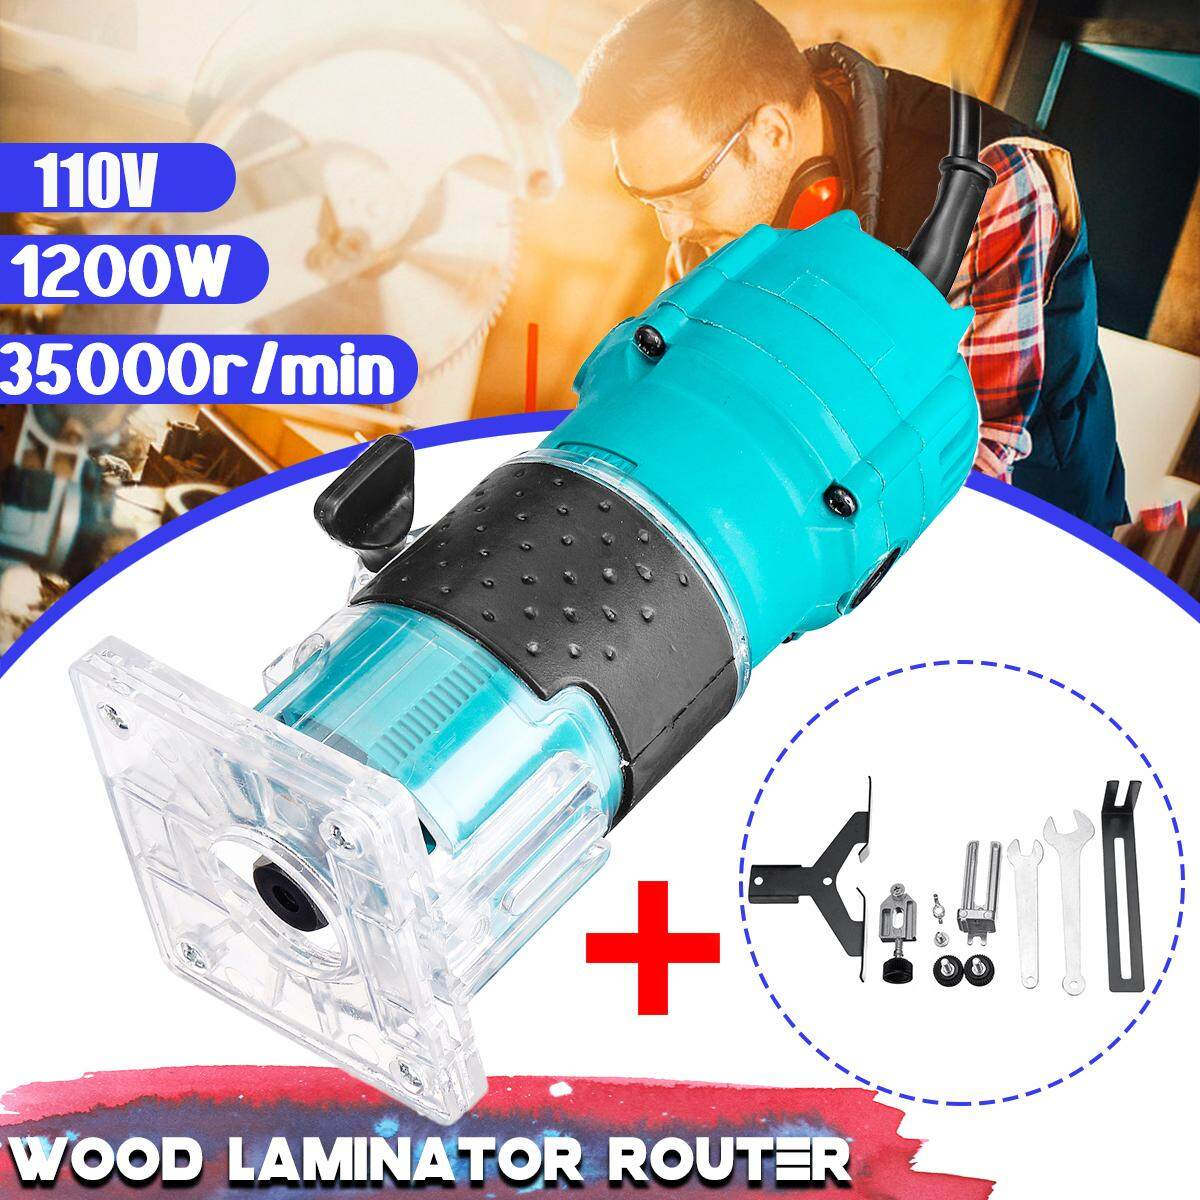 110V 1200W 35000r/min Electric Hand Trimmer Wood Laminator Router Edge Joiners